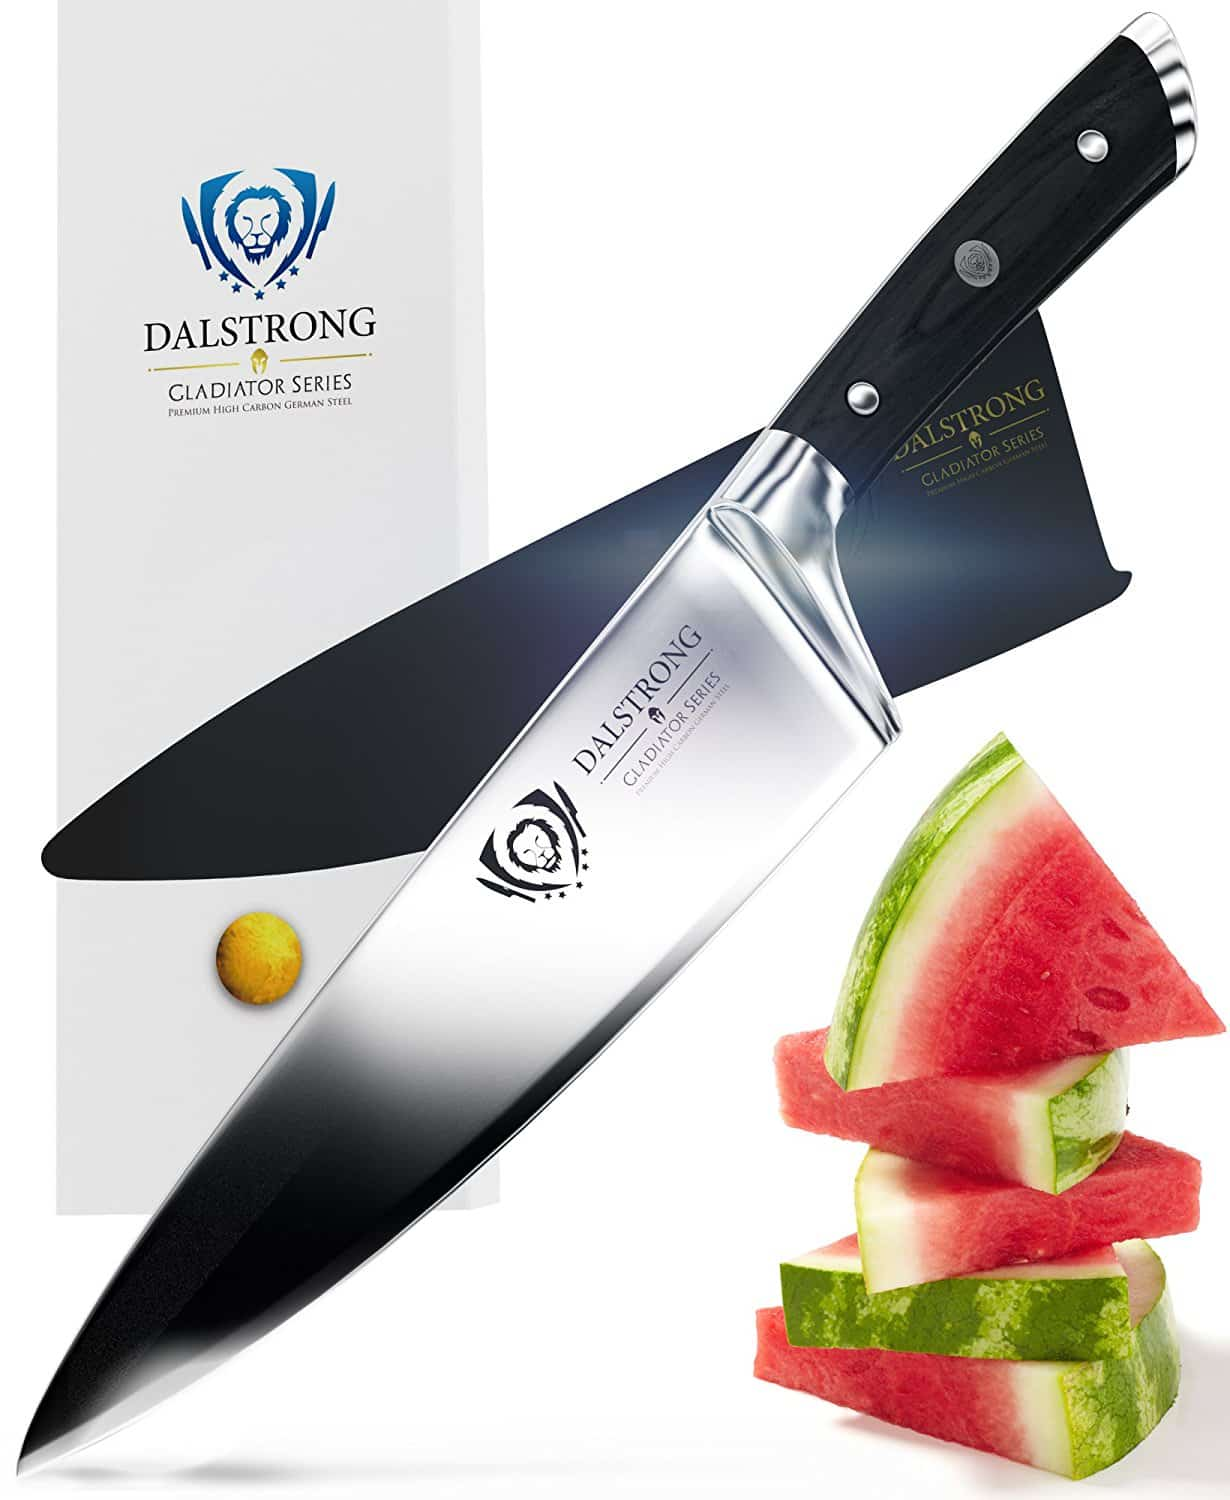 Dalstrong Gladiator 8 Chef Knives